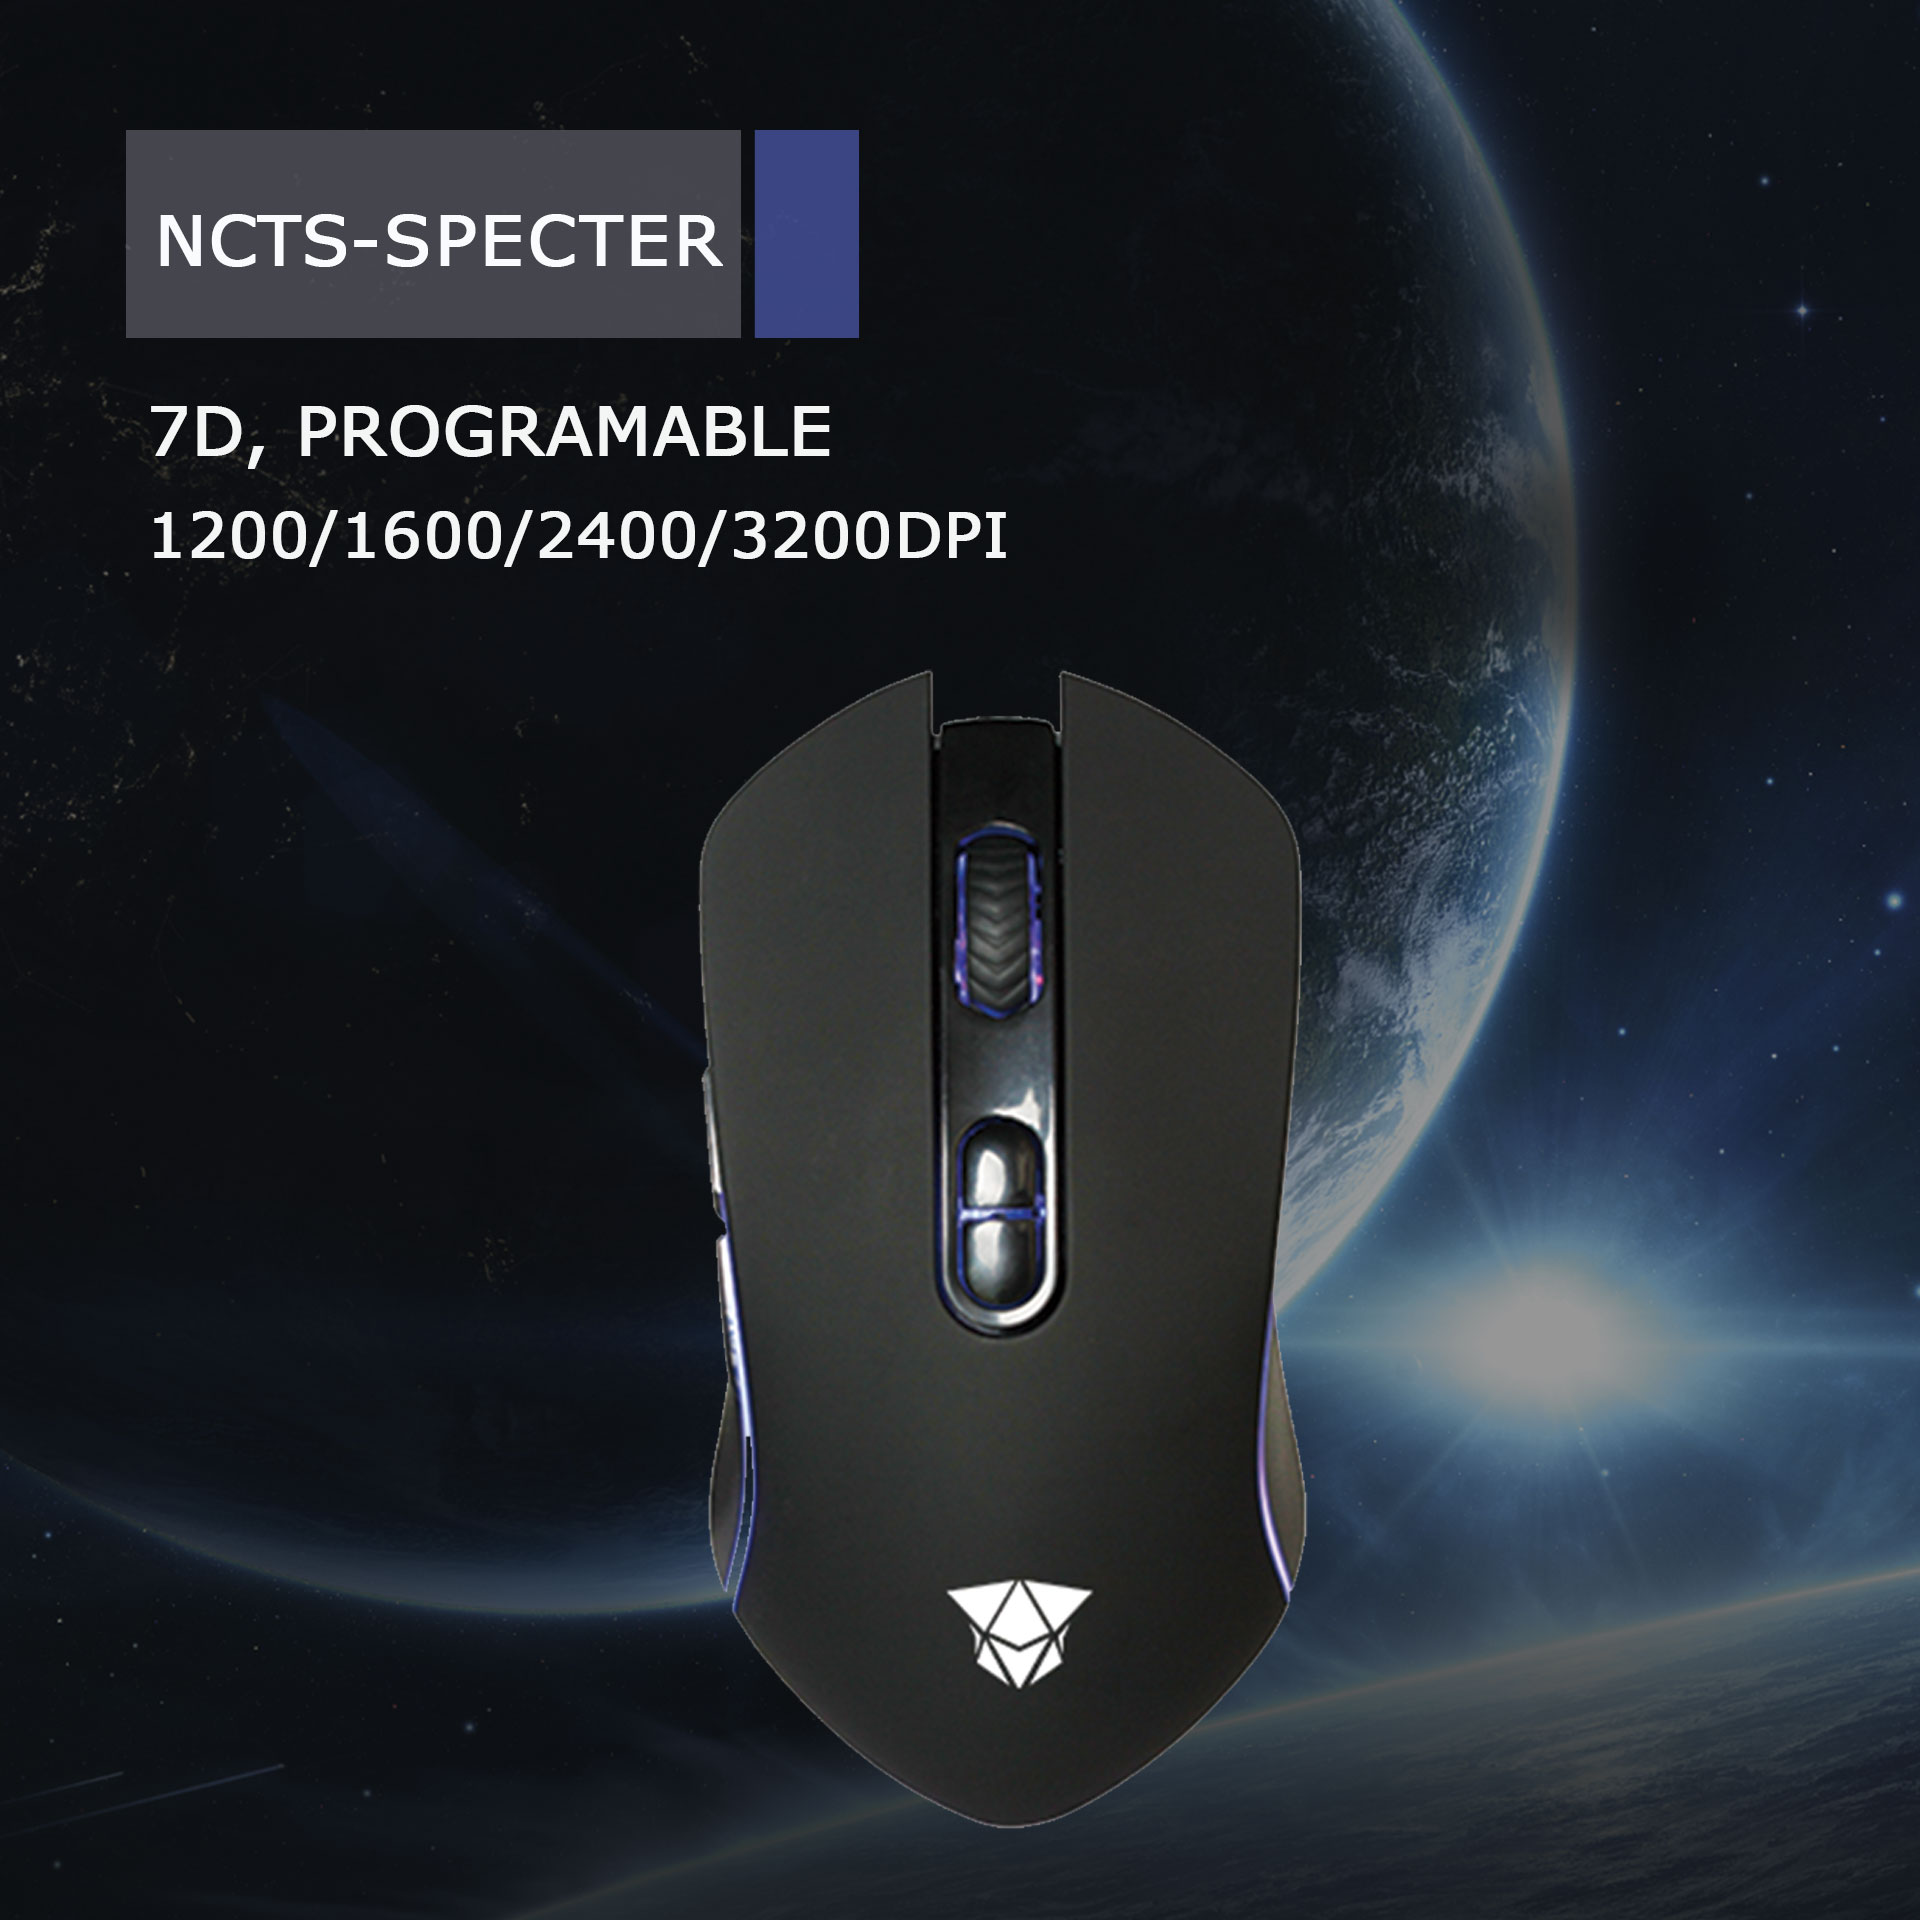 NCTS-SPECTER